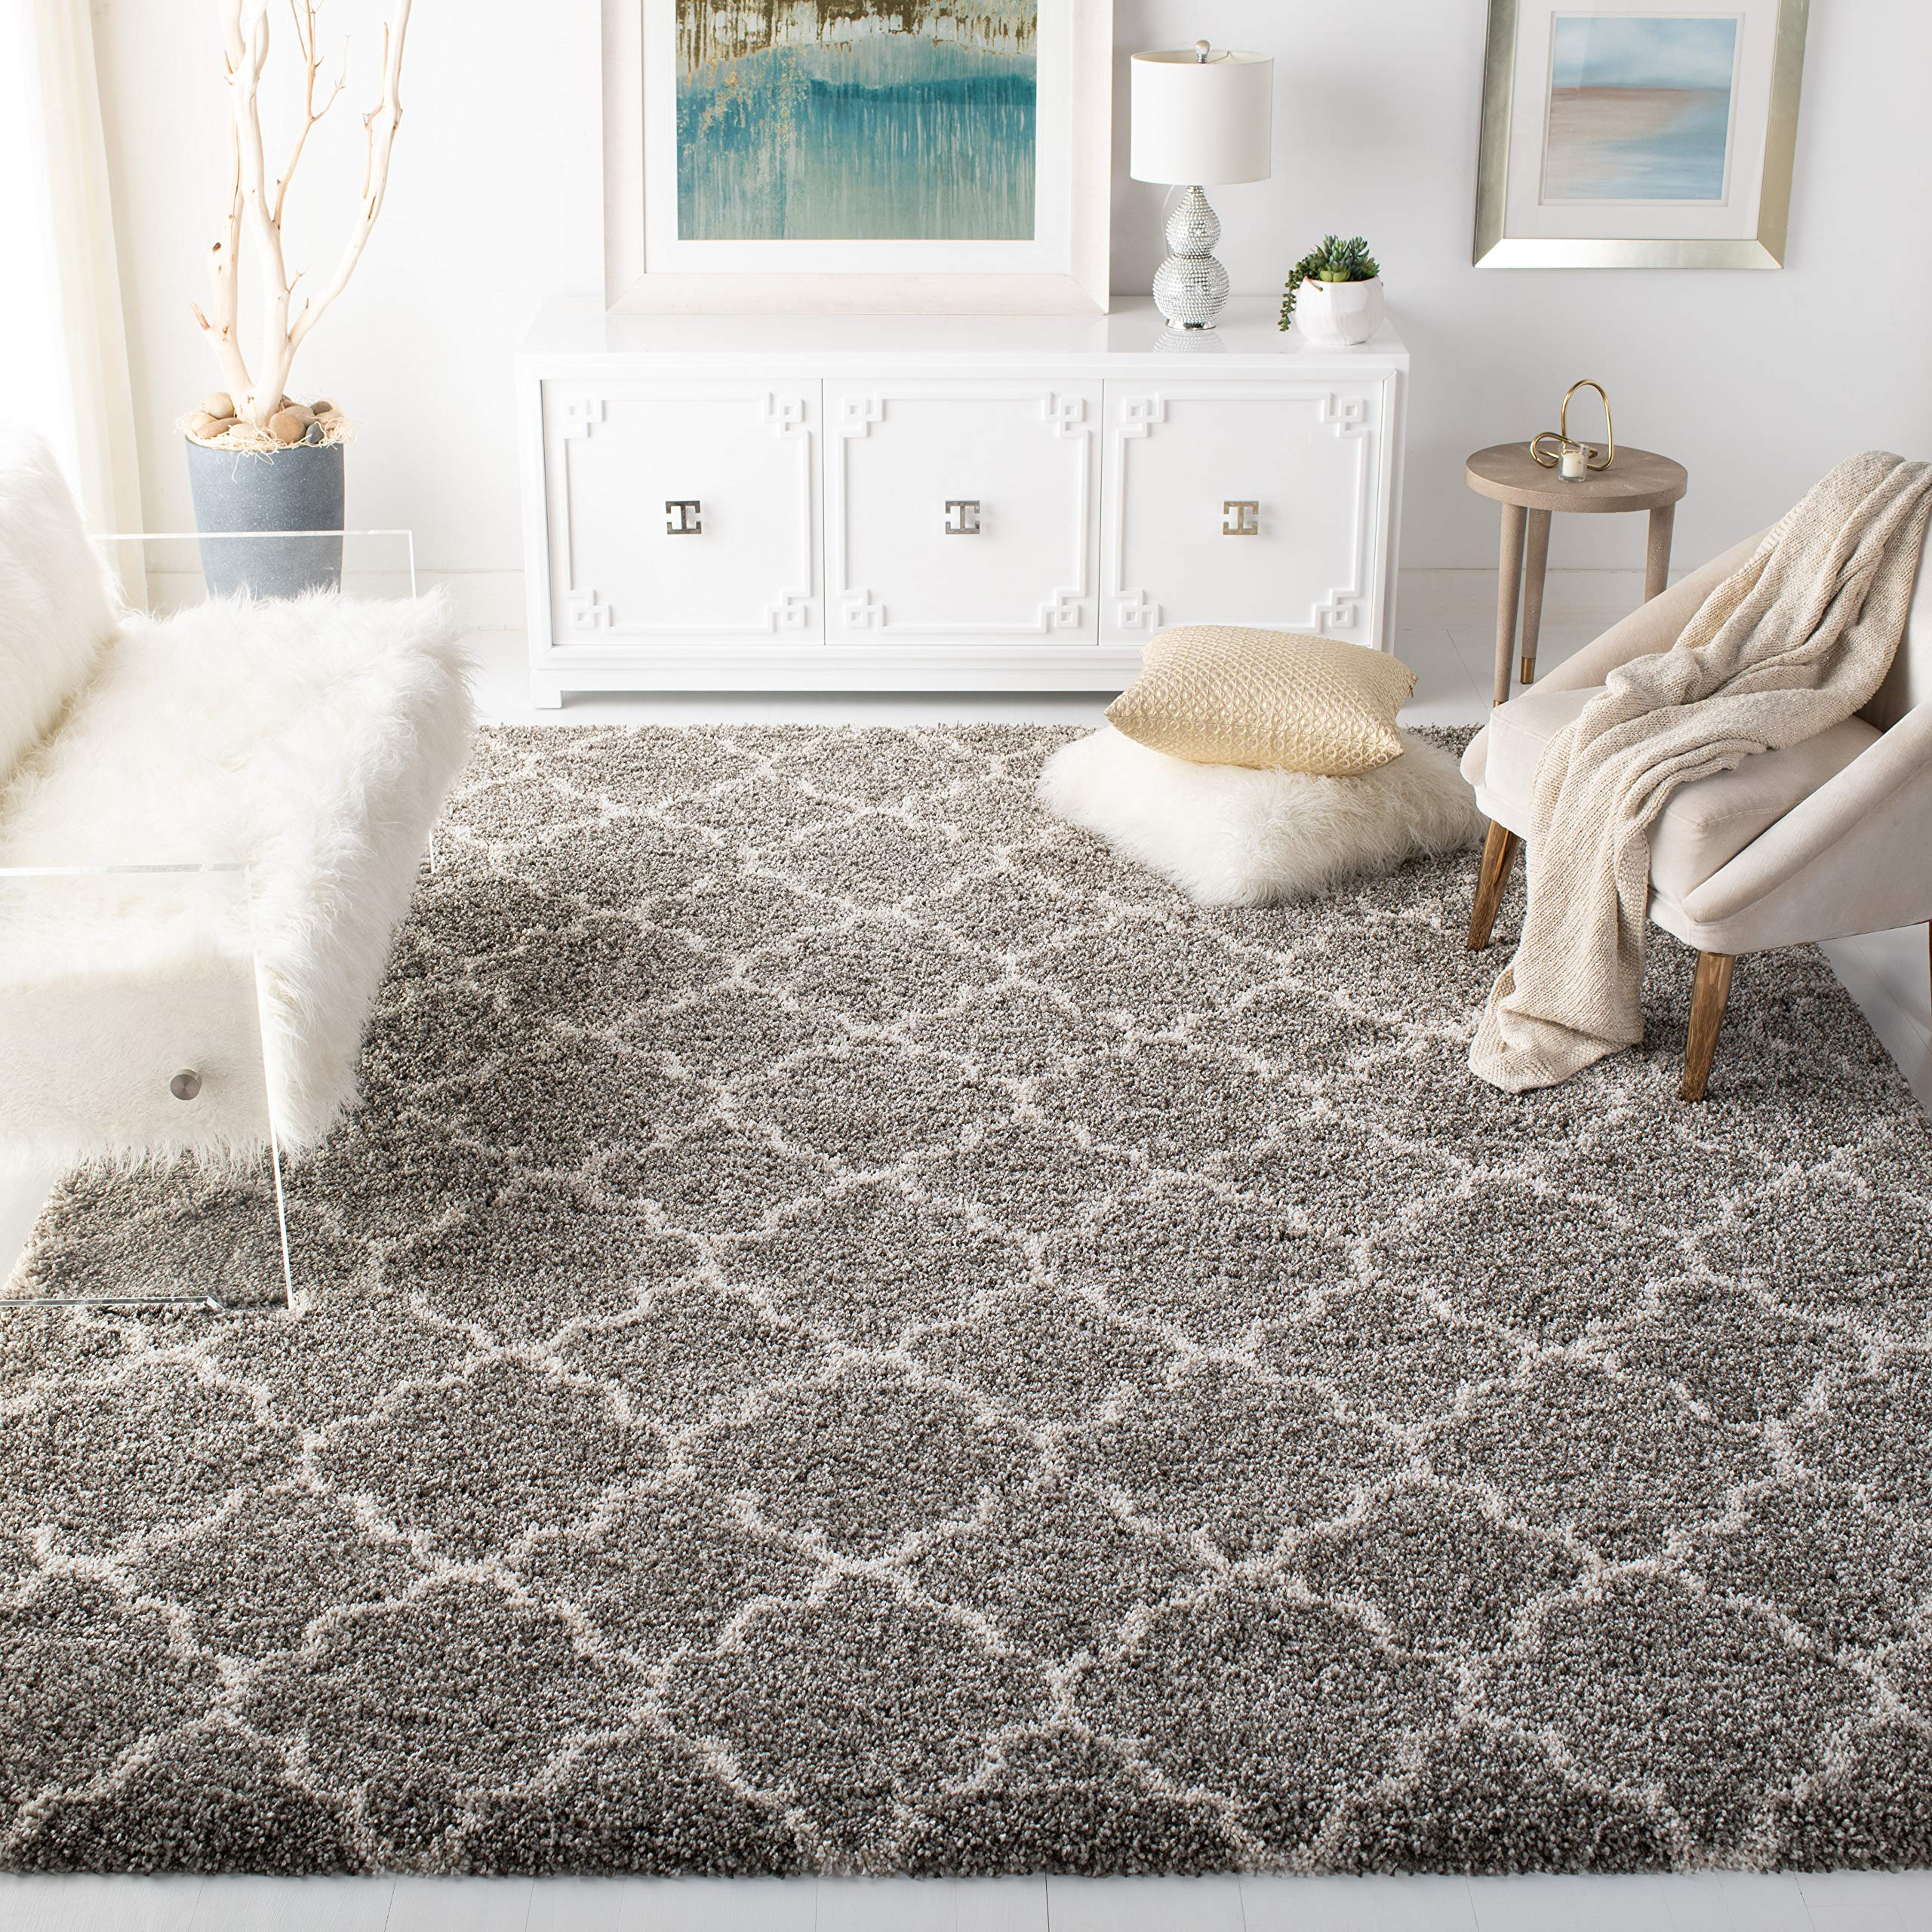 Safavieh Hudson Shag Collection Grey and Ivory Moroccan Geometric Quatrefoil Area Rug (8' x 10') product image